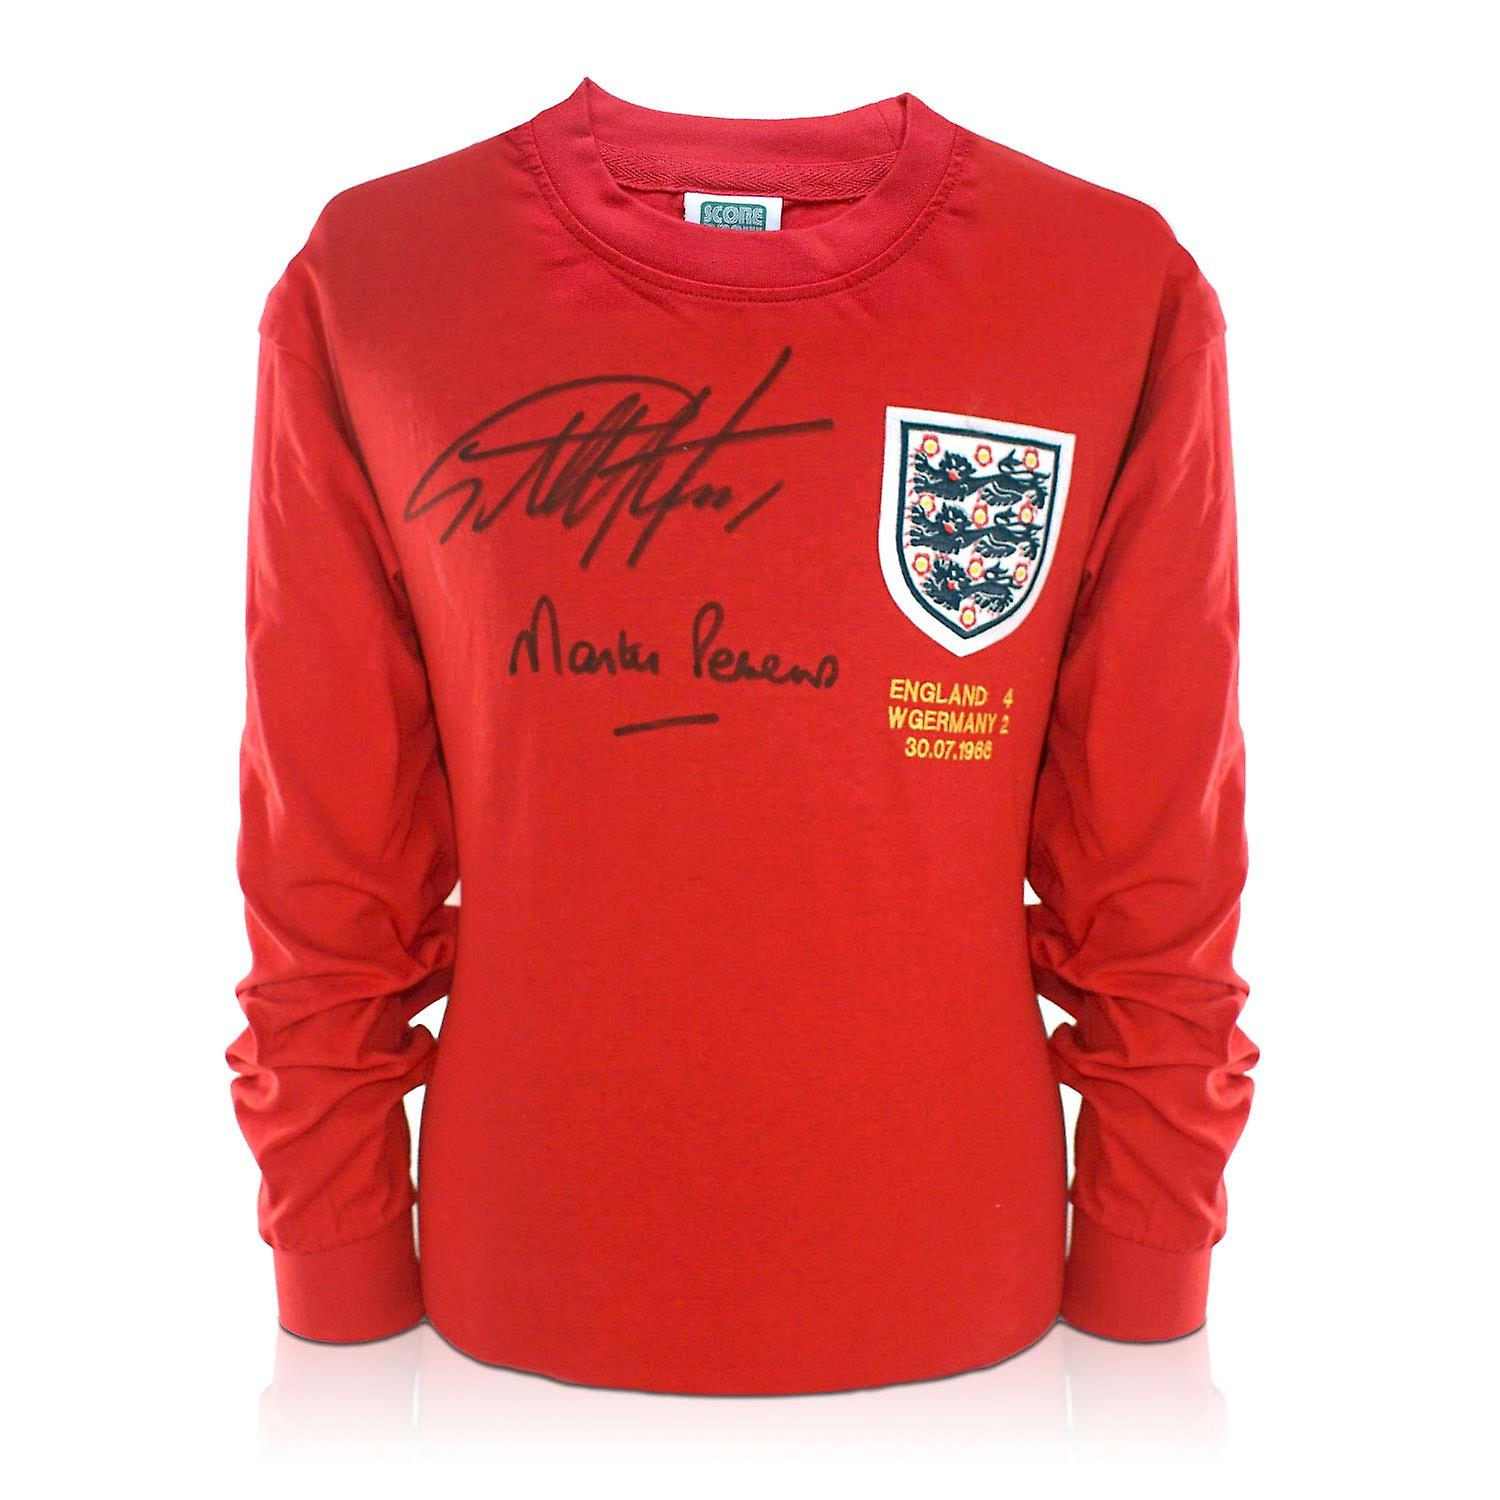 Geoff Hurst And Martin Peters Signed England 1966 Football Shirt